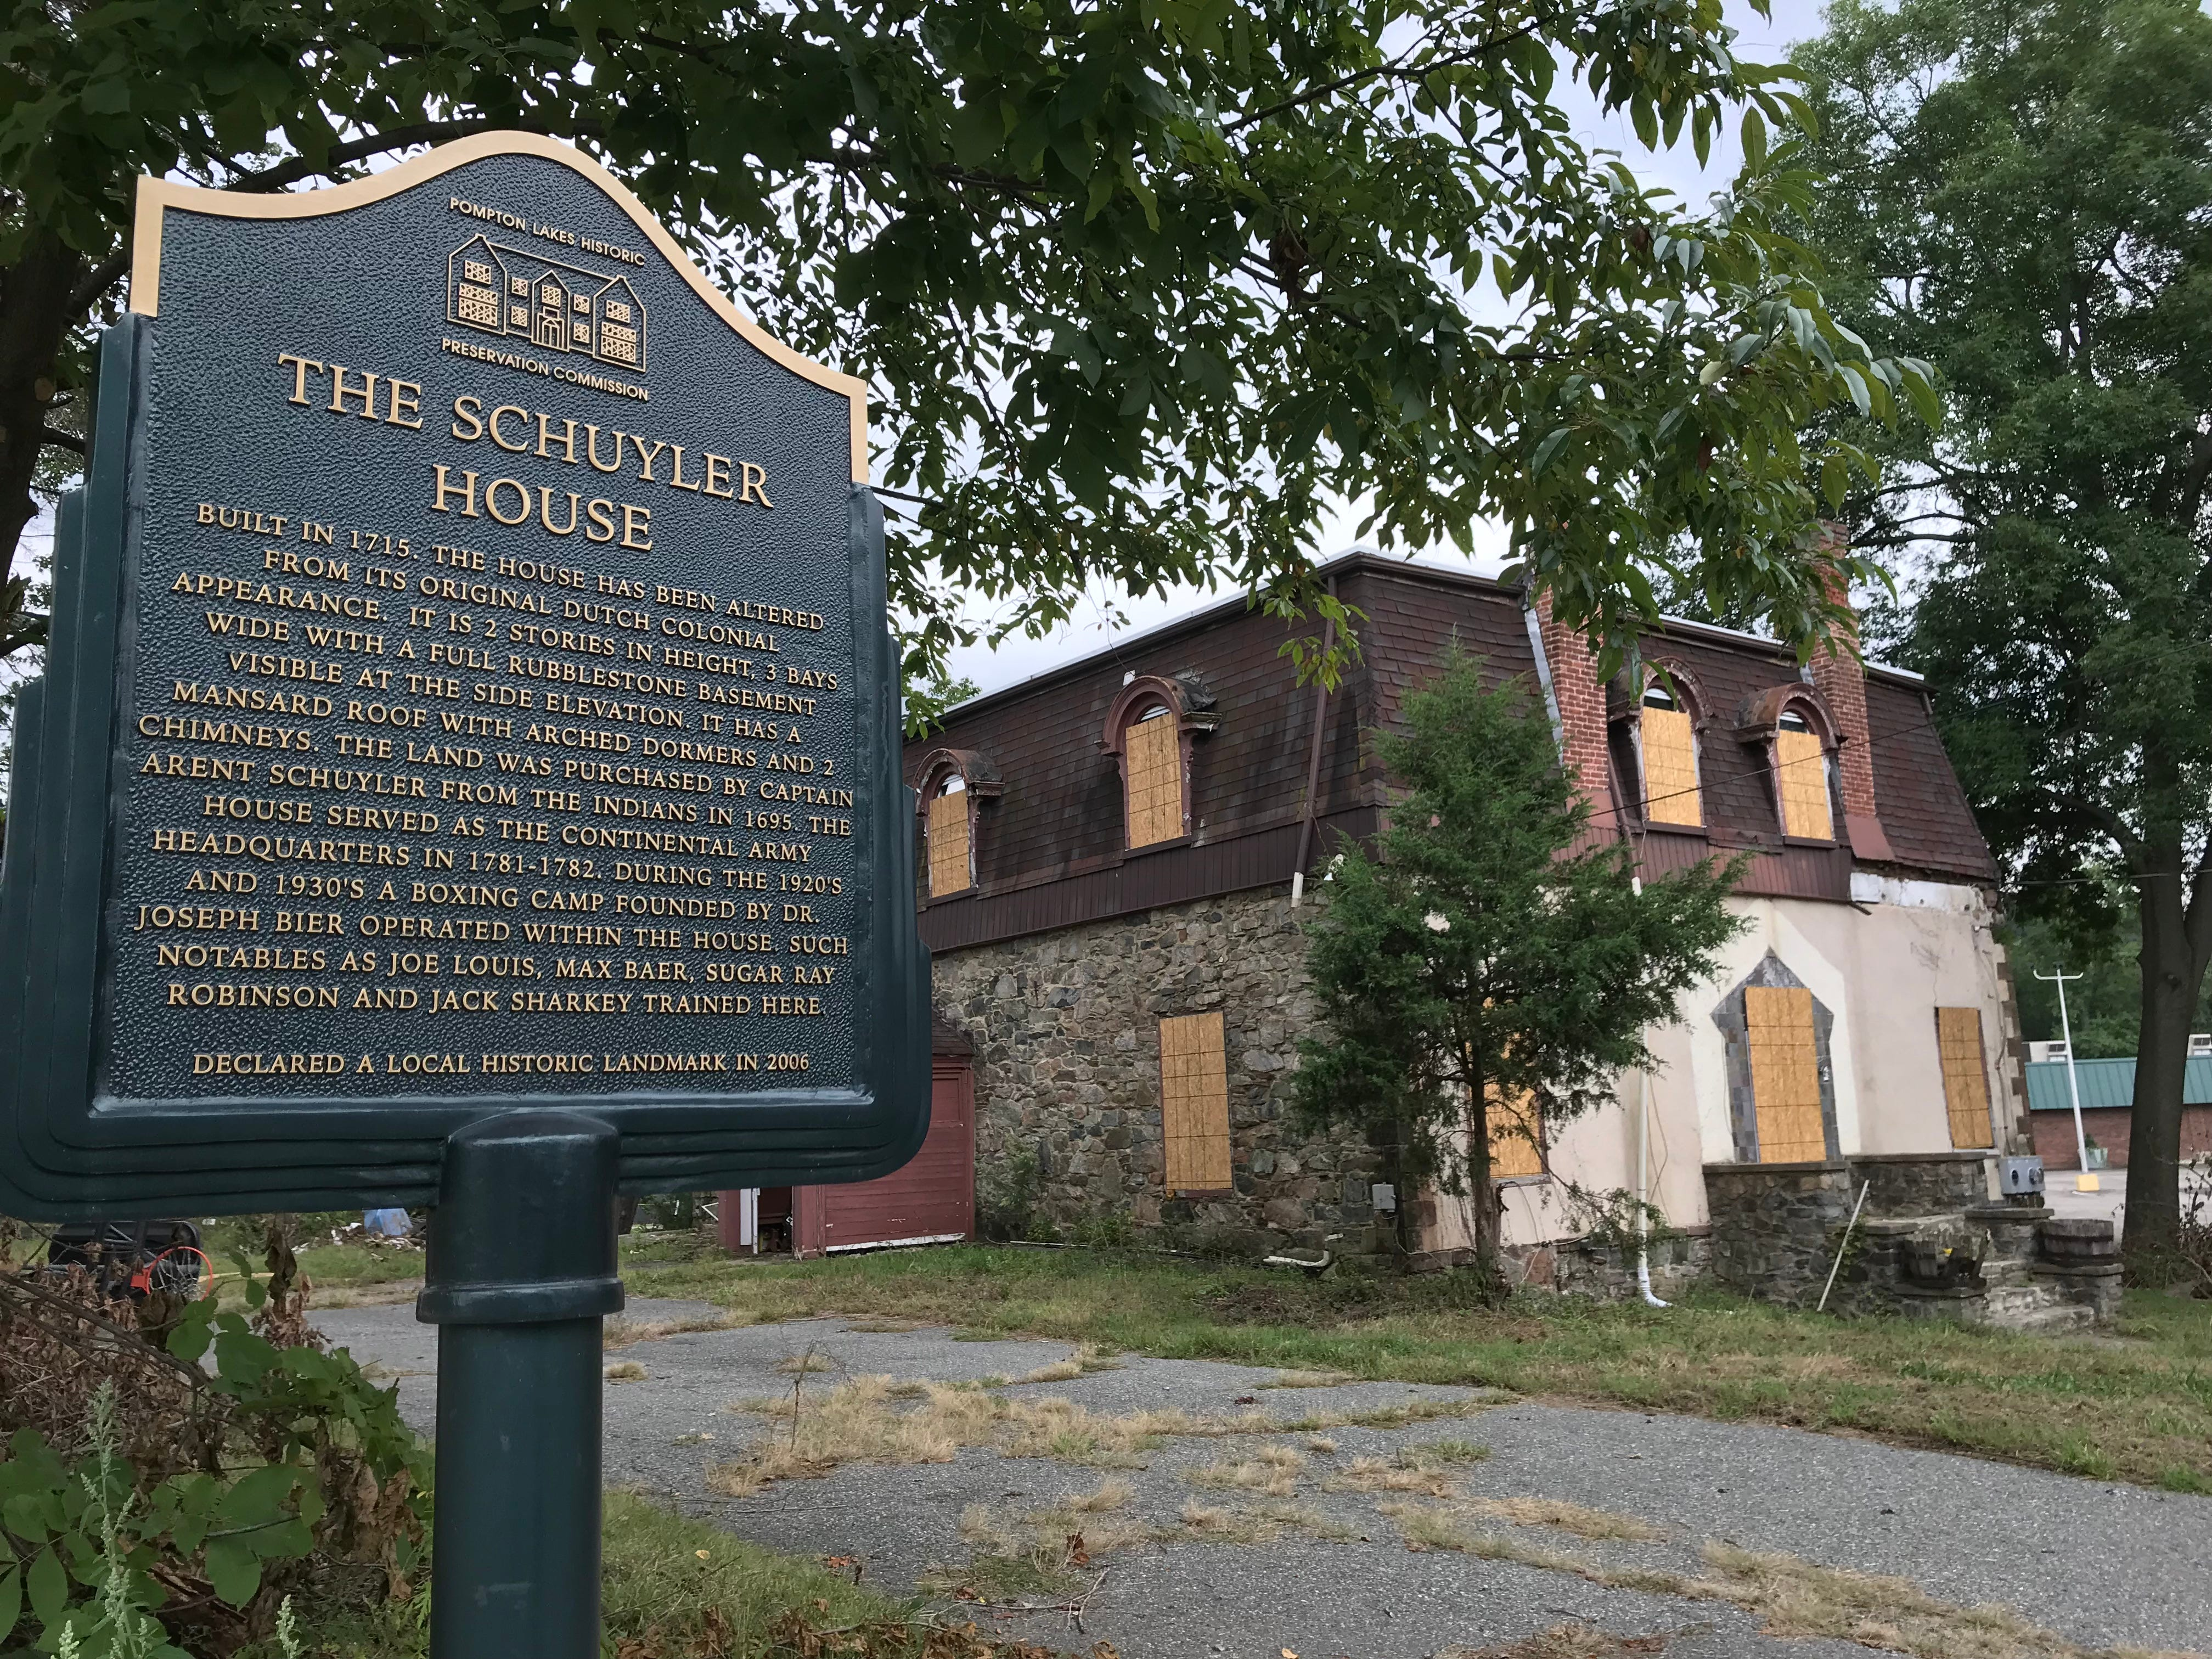 The Schuyler House in Pompton Lakes has been boarded up by its bank owners. Built in 1715, the home seen on Sept. 17, 2018 once served as the center of a training camp frequented by Joe Louis and others.